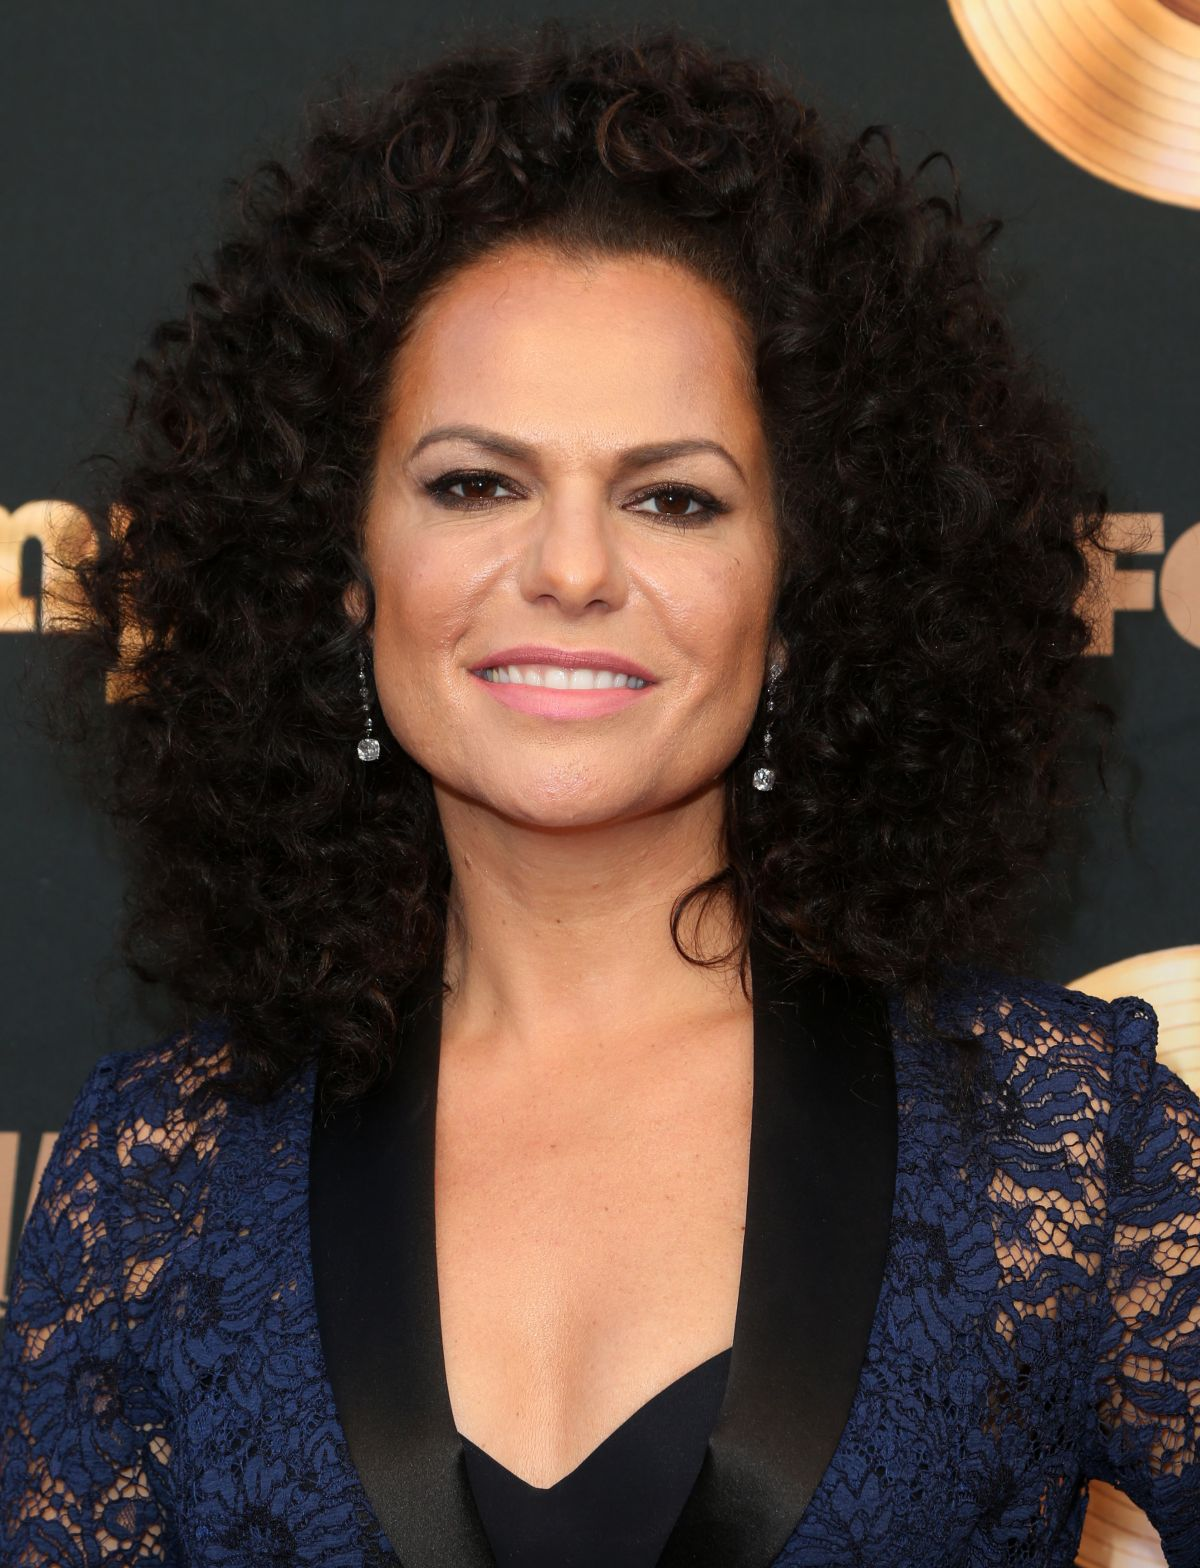 sanaa hamri interviewsanaa hamri empire, sanaa hamri prince, sanaa hamri twitter, sanaa hamri director, sanaa hamri music videos, sanaa hamri husband, sanaa hamri imdb, sanaa hamri boyfriend, sanaa hamri net worth, sanaa hamri instagram, sanaa hamri movies, санаа хамри, sanaa hamri contact, sanaa hamri feet, sanaa hamri facebook, sanaa hamri israel, sanaa hamri production company, sanaa hamri married, sanaa hamri interview, sanaa hamri mariah carey